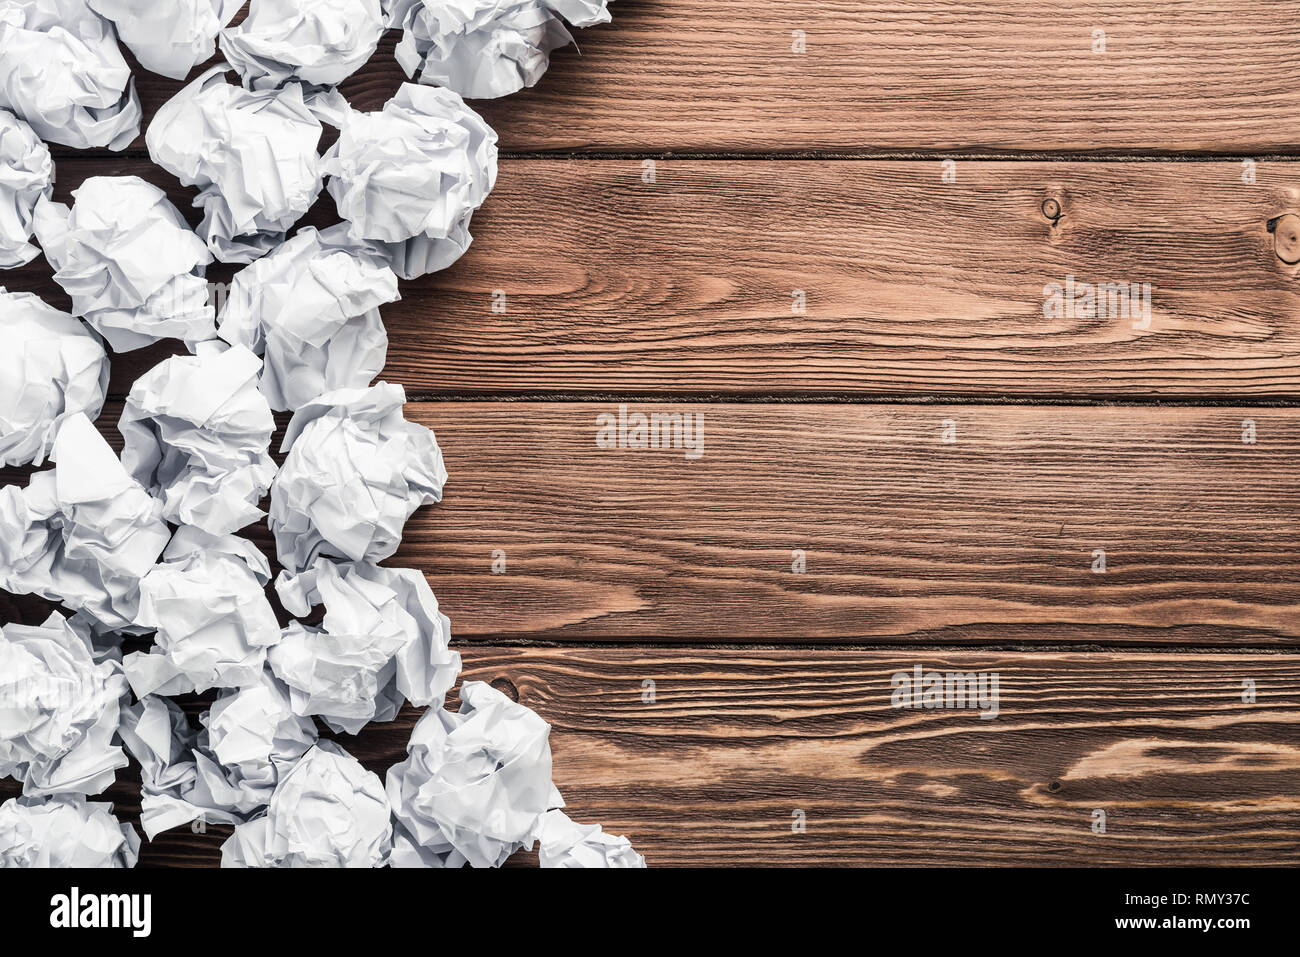 Ideological concept with wastepaper on wooden table - Stock Image